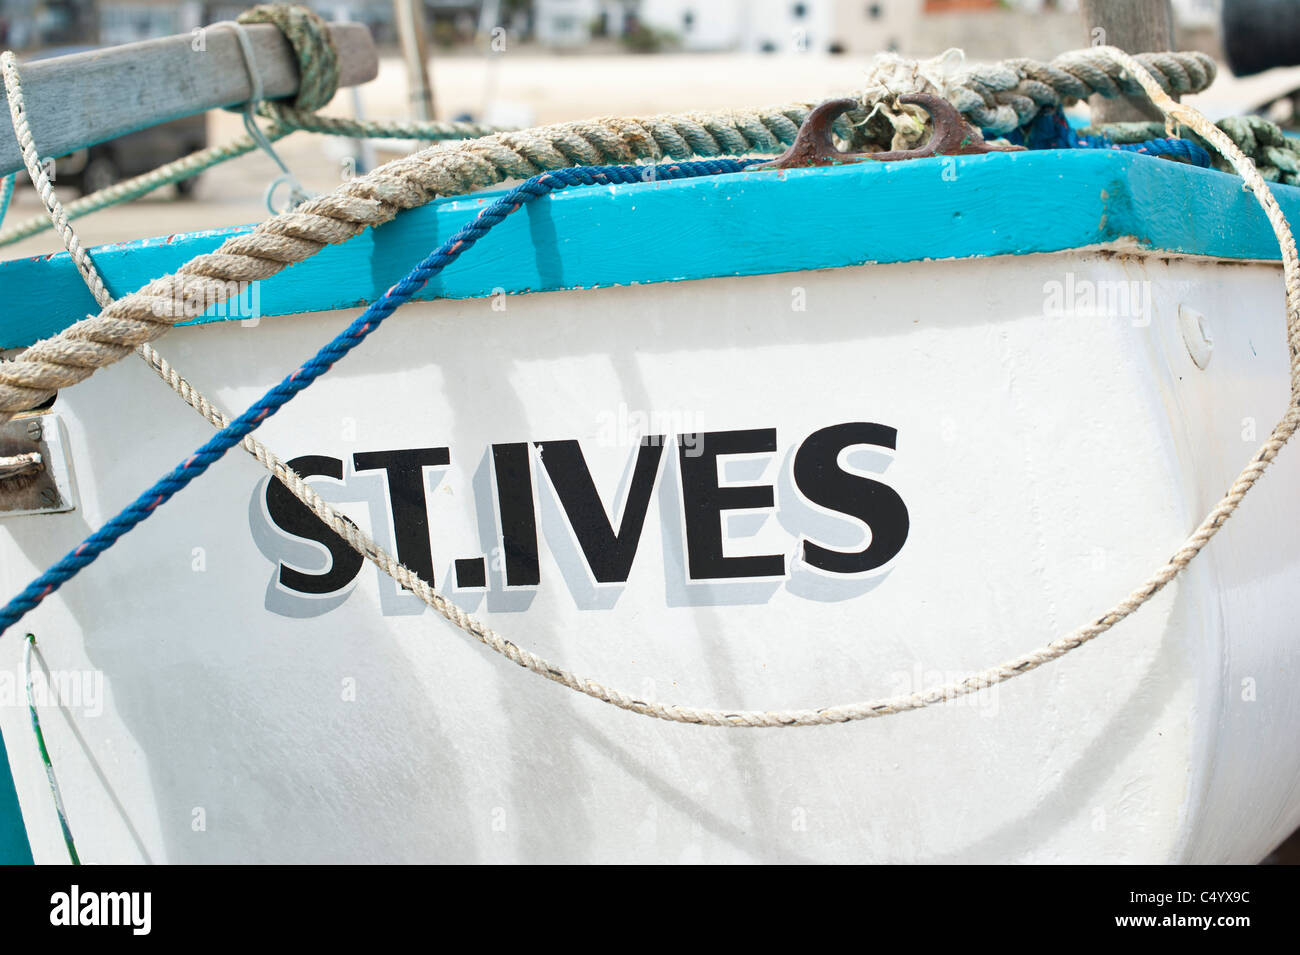 St Ives Cornwall UK Fishing Boat With The Name Of Clearly Showing On Stern